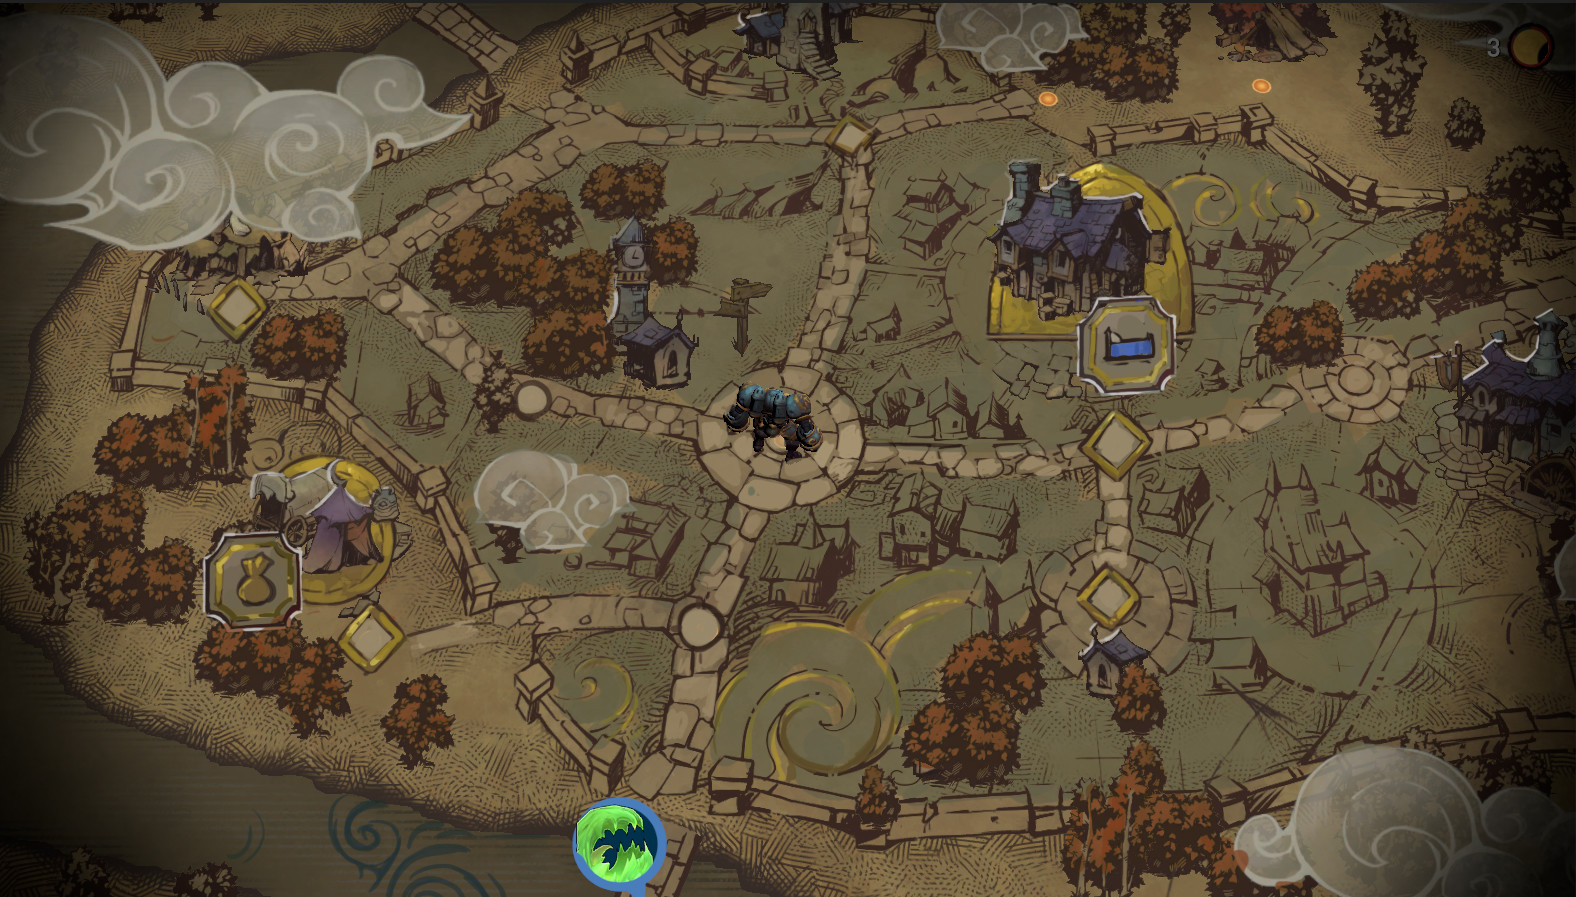 ArtStation - Battle Chasers: Night War   World Map, Grace Liu on persecuted church world map, remnant world map, pillars world map, birthright world map, zen world map, thera world map, christian persecution world map, evil world map, divinity world map, golden horn world map, sanctuary world map, sarai world map, alo world map, sunni world map, opal world map, zara world map, imagination world map, elmina world map, solomon world map, galilee world map,